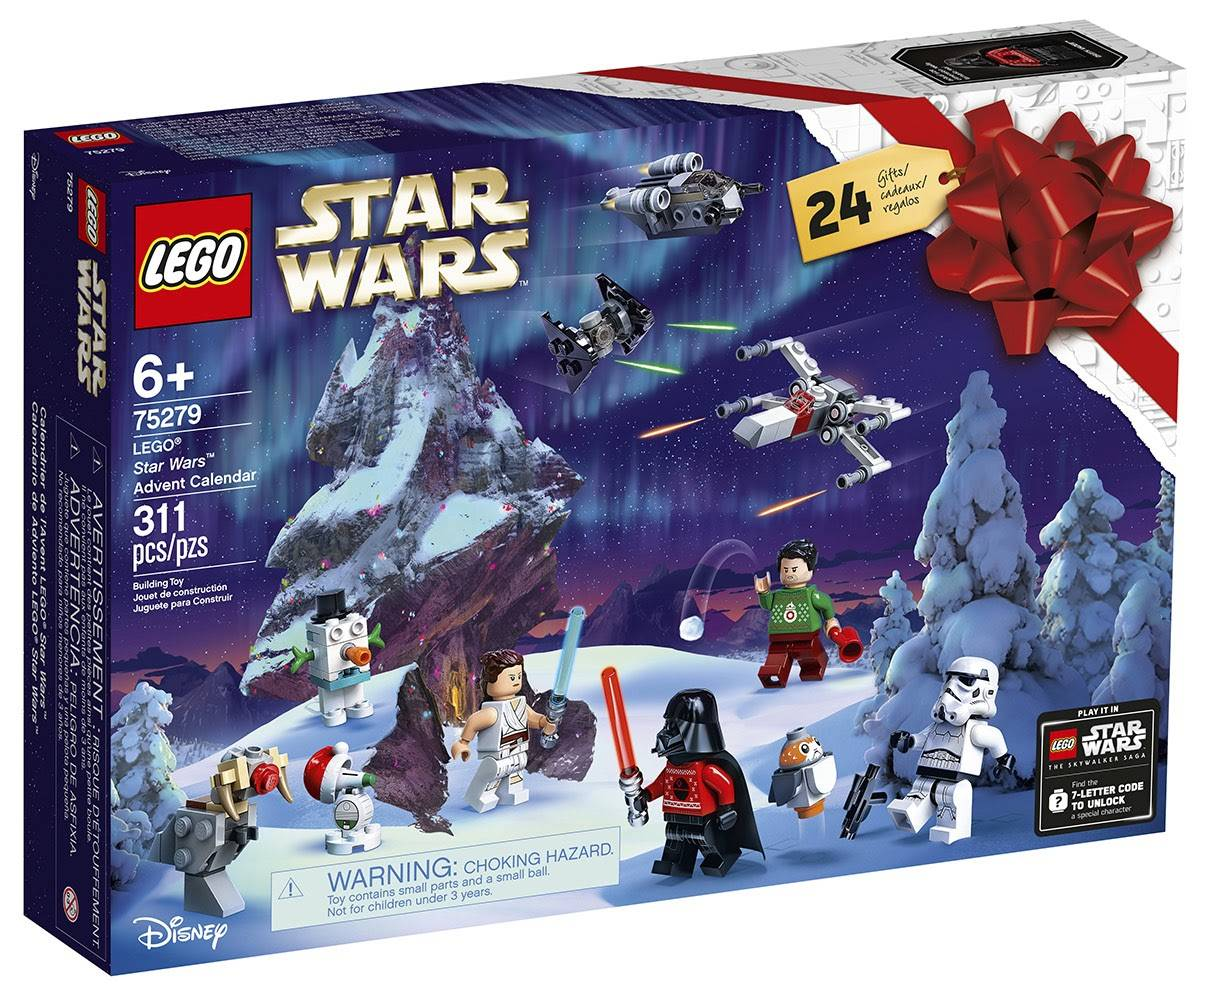 New Star Wars Lego Sets Christmas 2020 More New LEGO Star Wars Sets Announced in Celebration of Upcoming